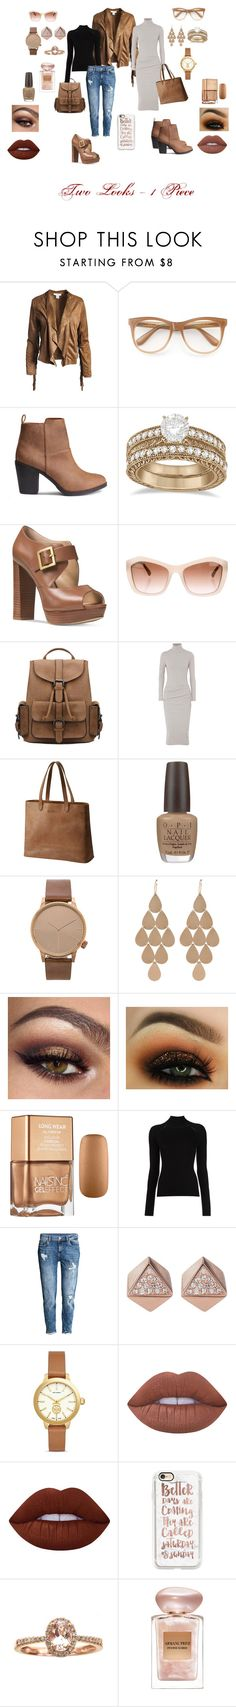 """""""1 Jacket - 2 Looks"""" by blaqphire ❤ liked on Polyvore featuring Sans Souci, Wildfox, Allurez, Michael Kors, Chanel, James Perse, SOREL, OPI, Komono and Irene Neuwirth"""